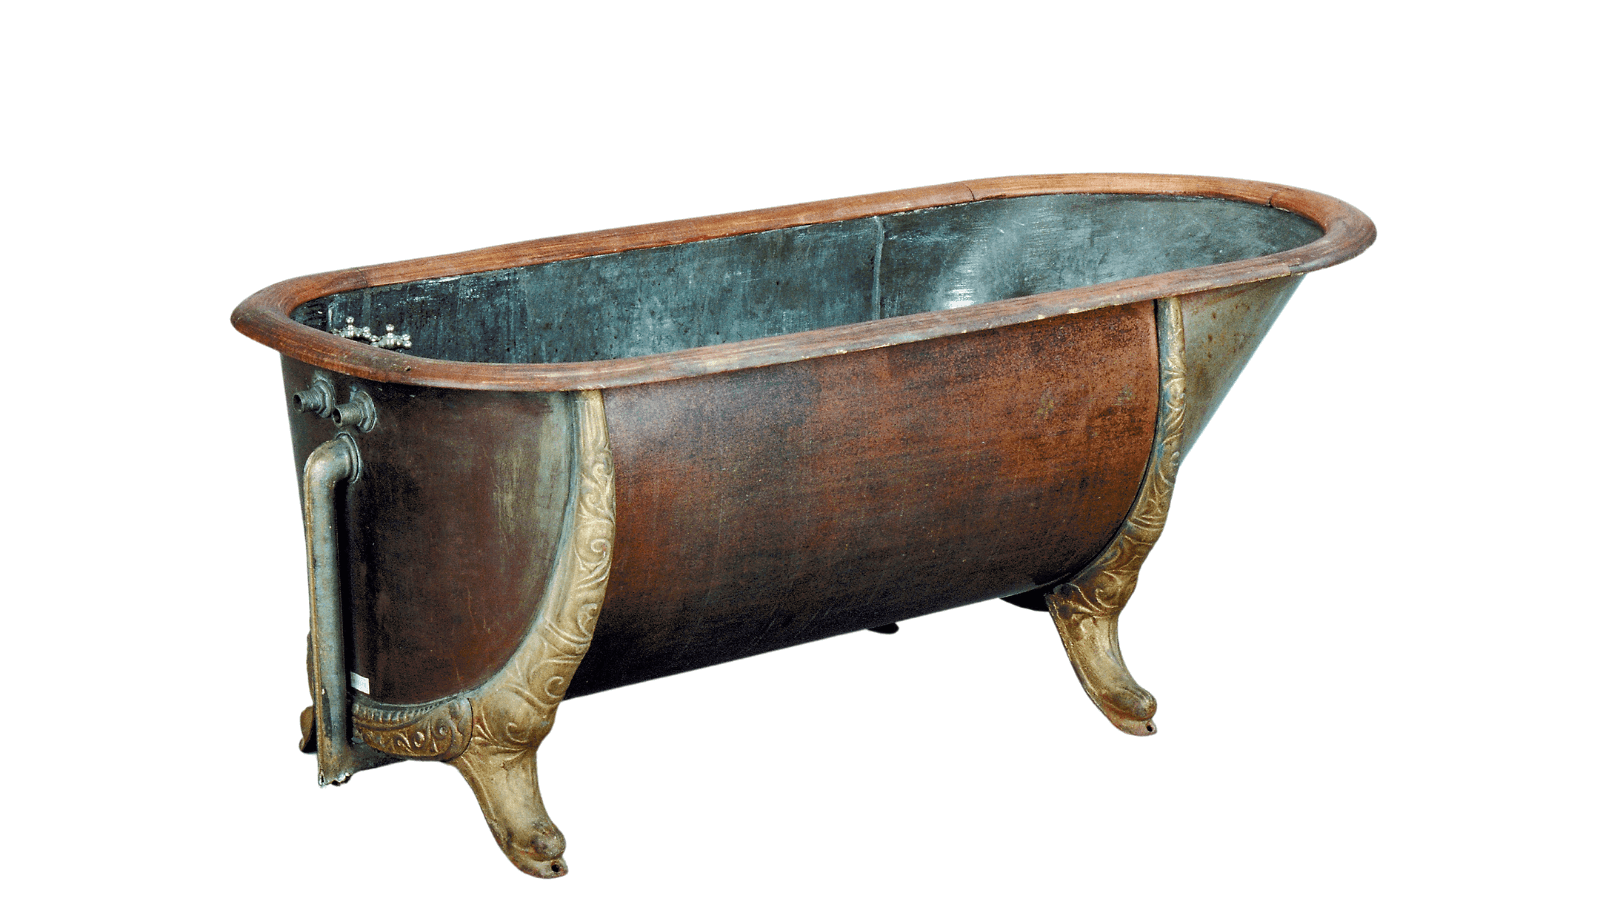 history of plumbing in cincinnati_bathtub_ the geiler company (3)